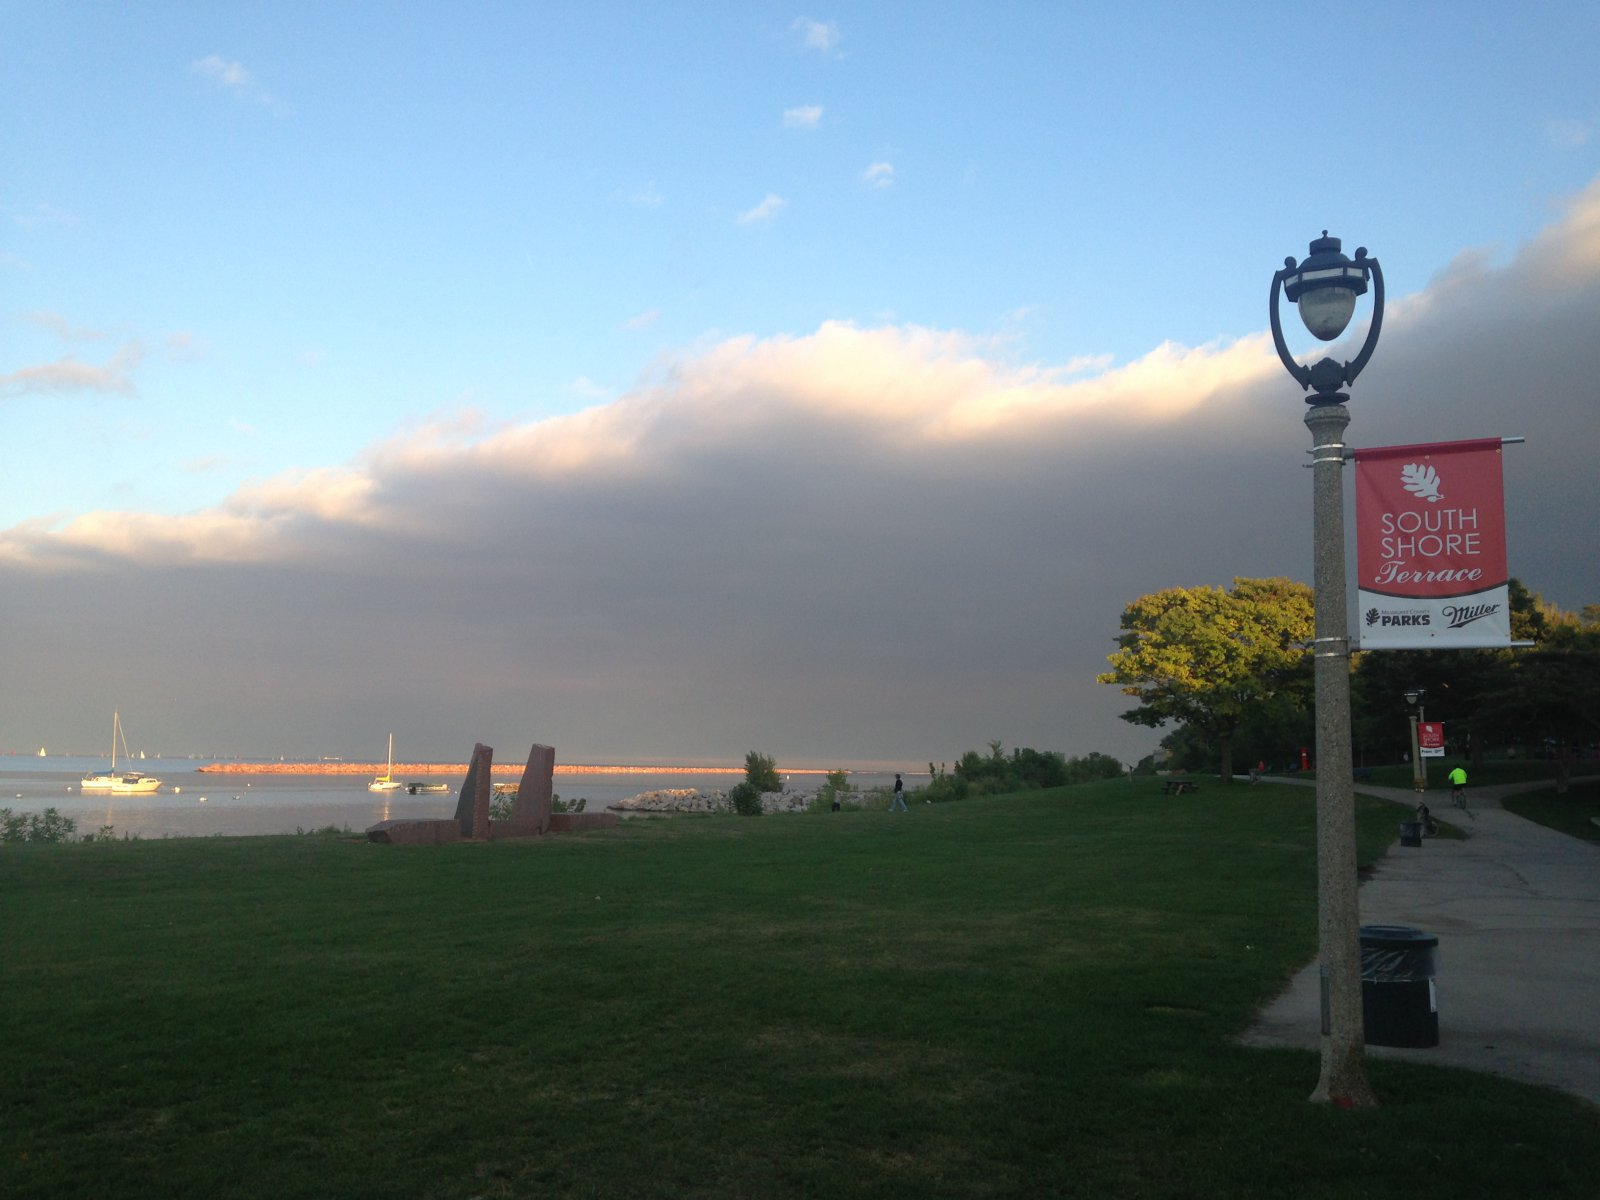 South Shore Park. Photo by Kristina Rolander.